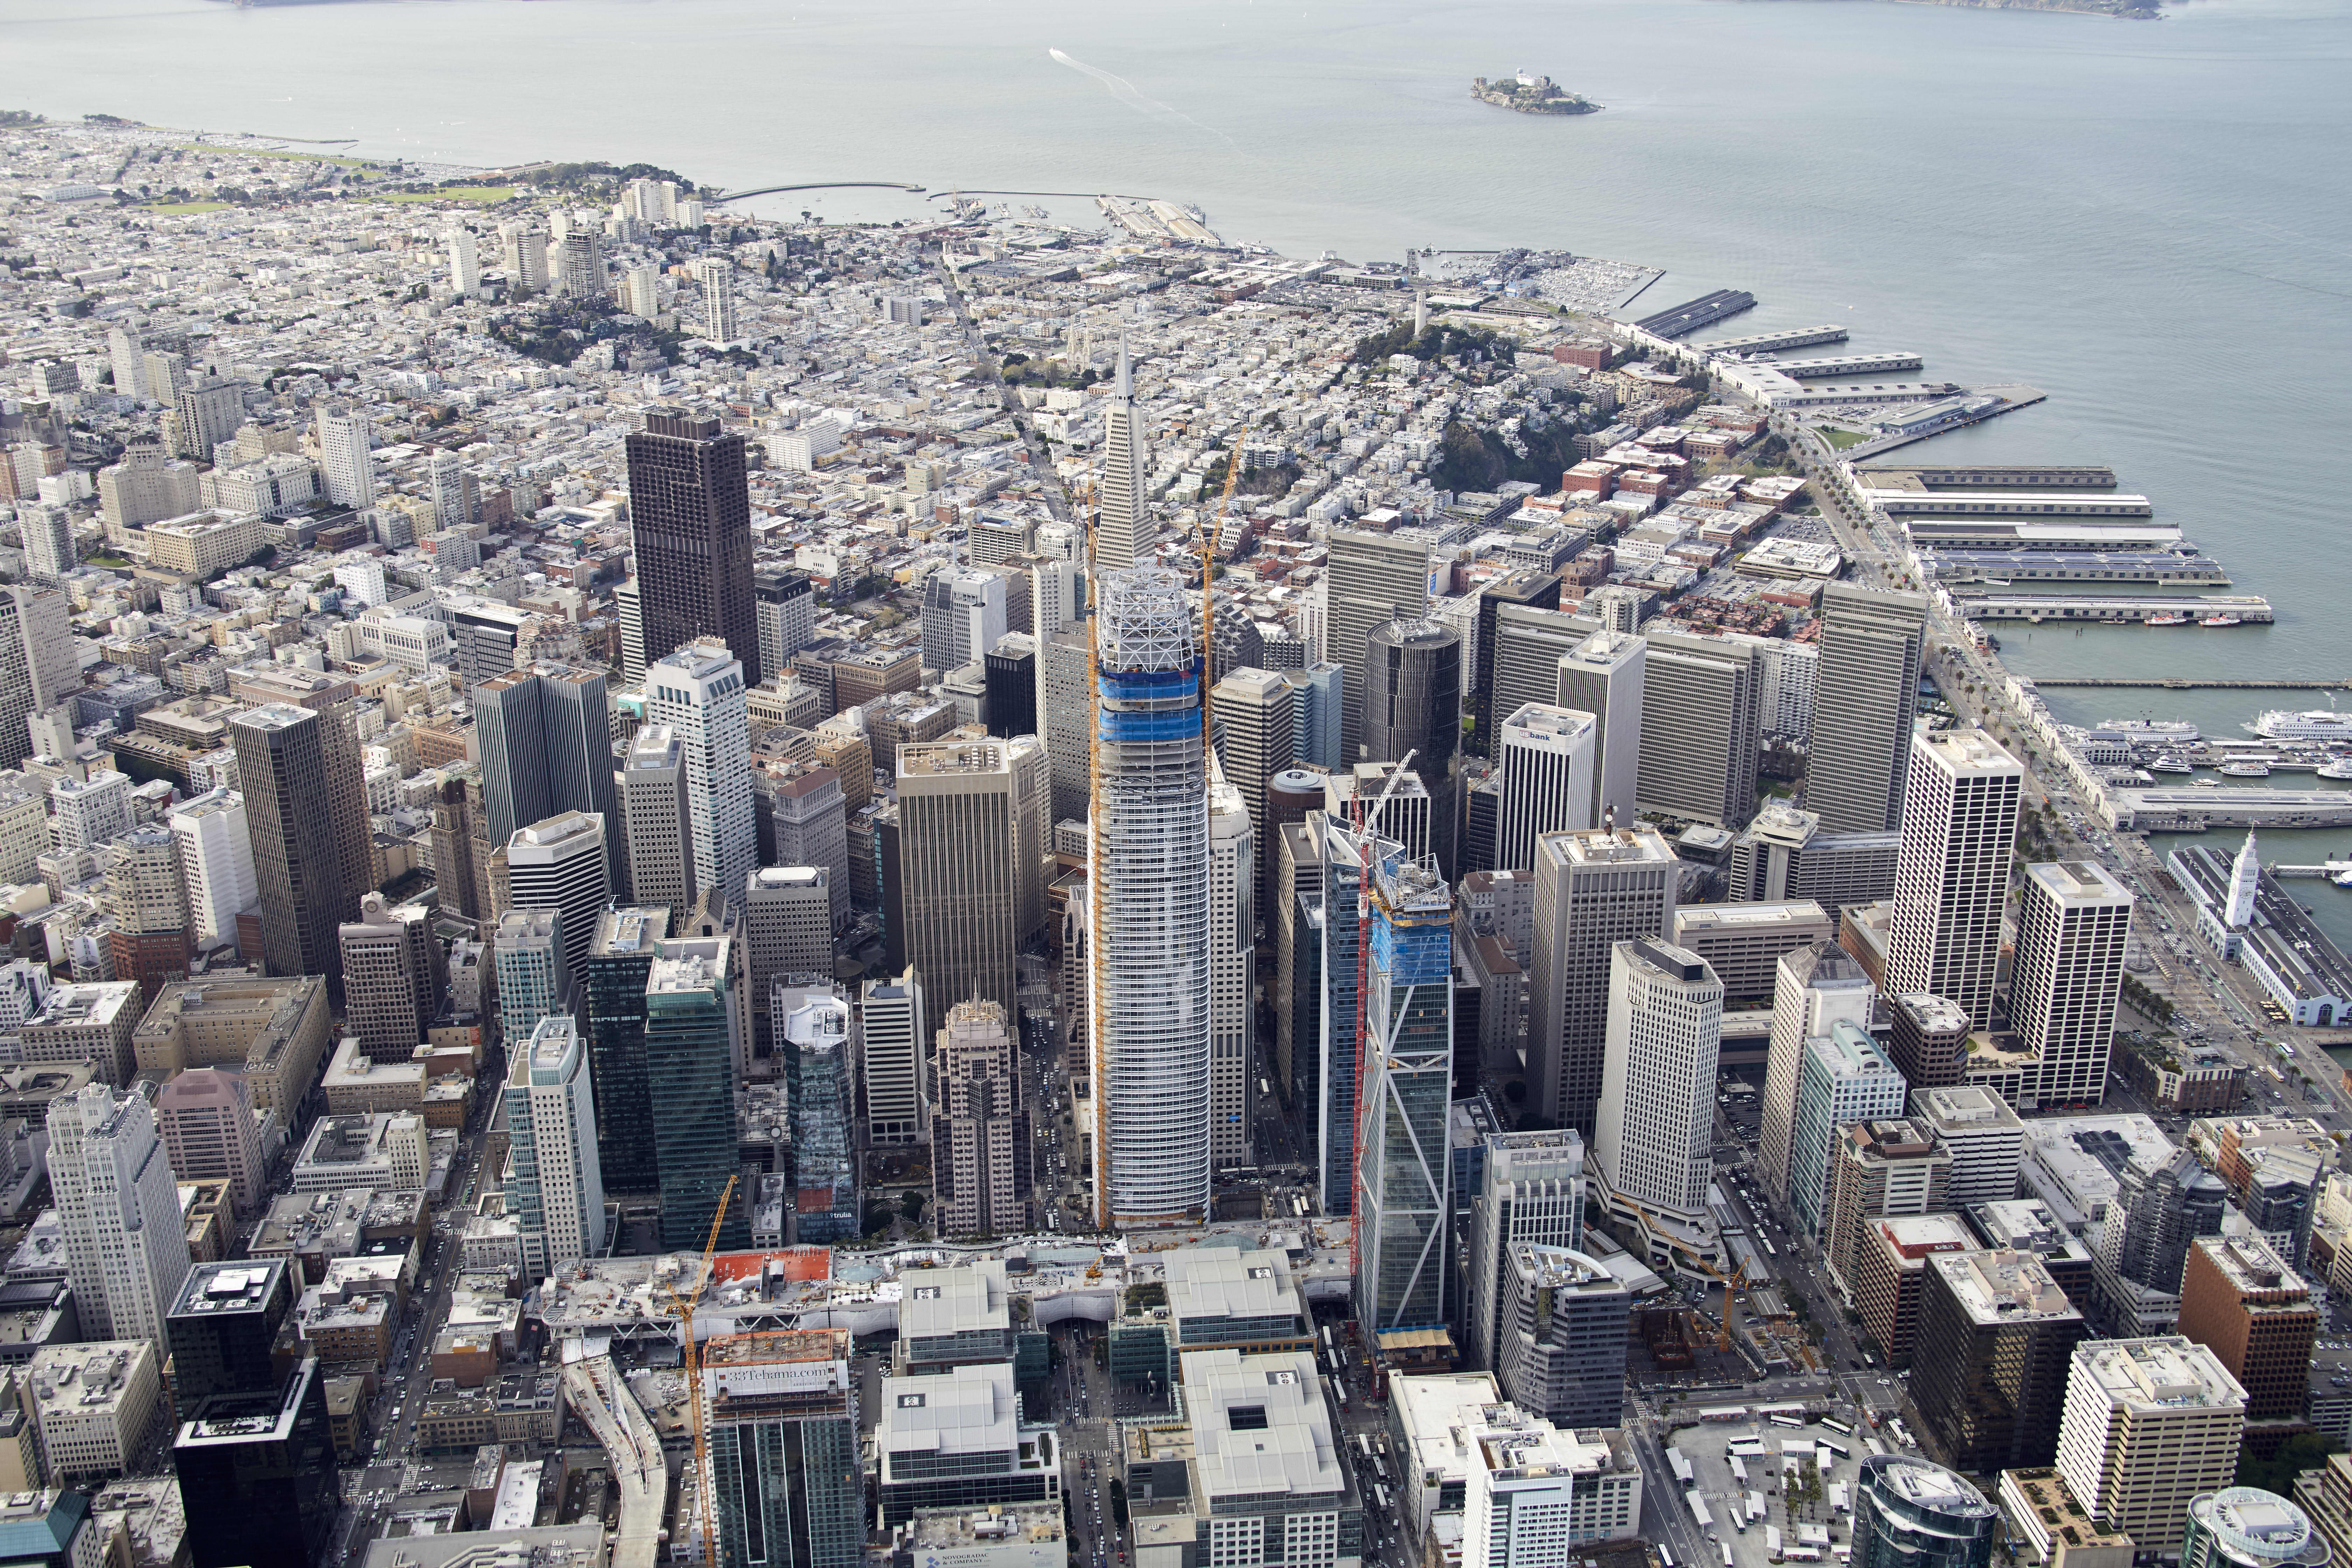 As San Francisco grows, so does the earthquake risk — here's why the city is not ready for the next Big One